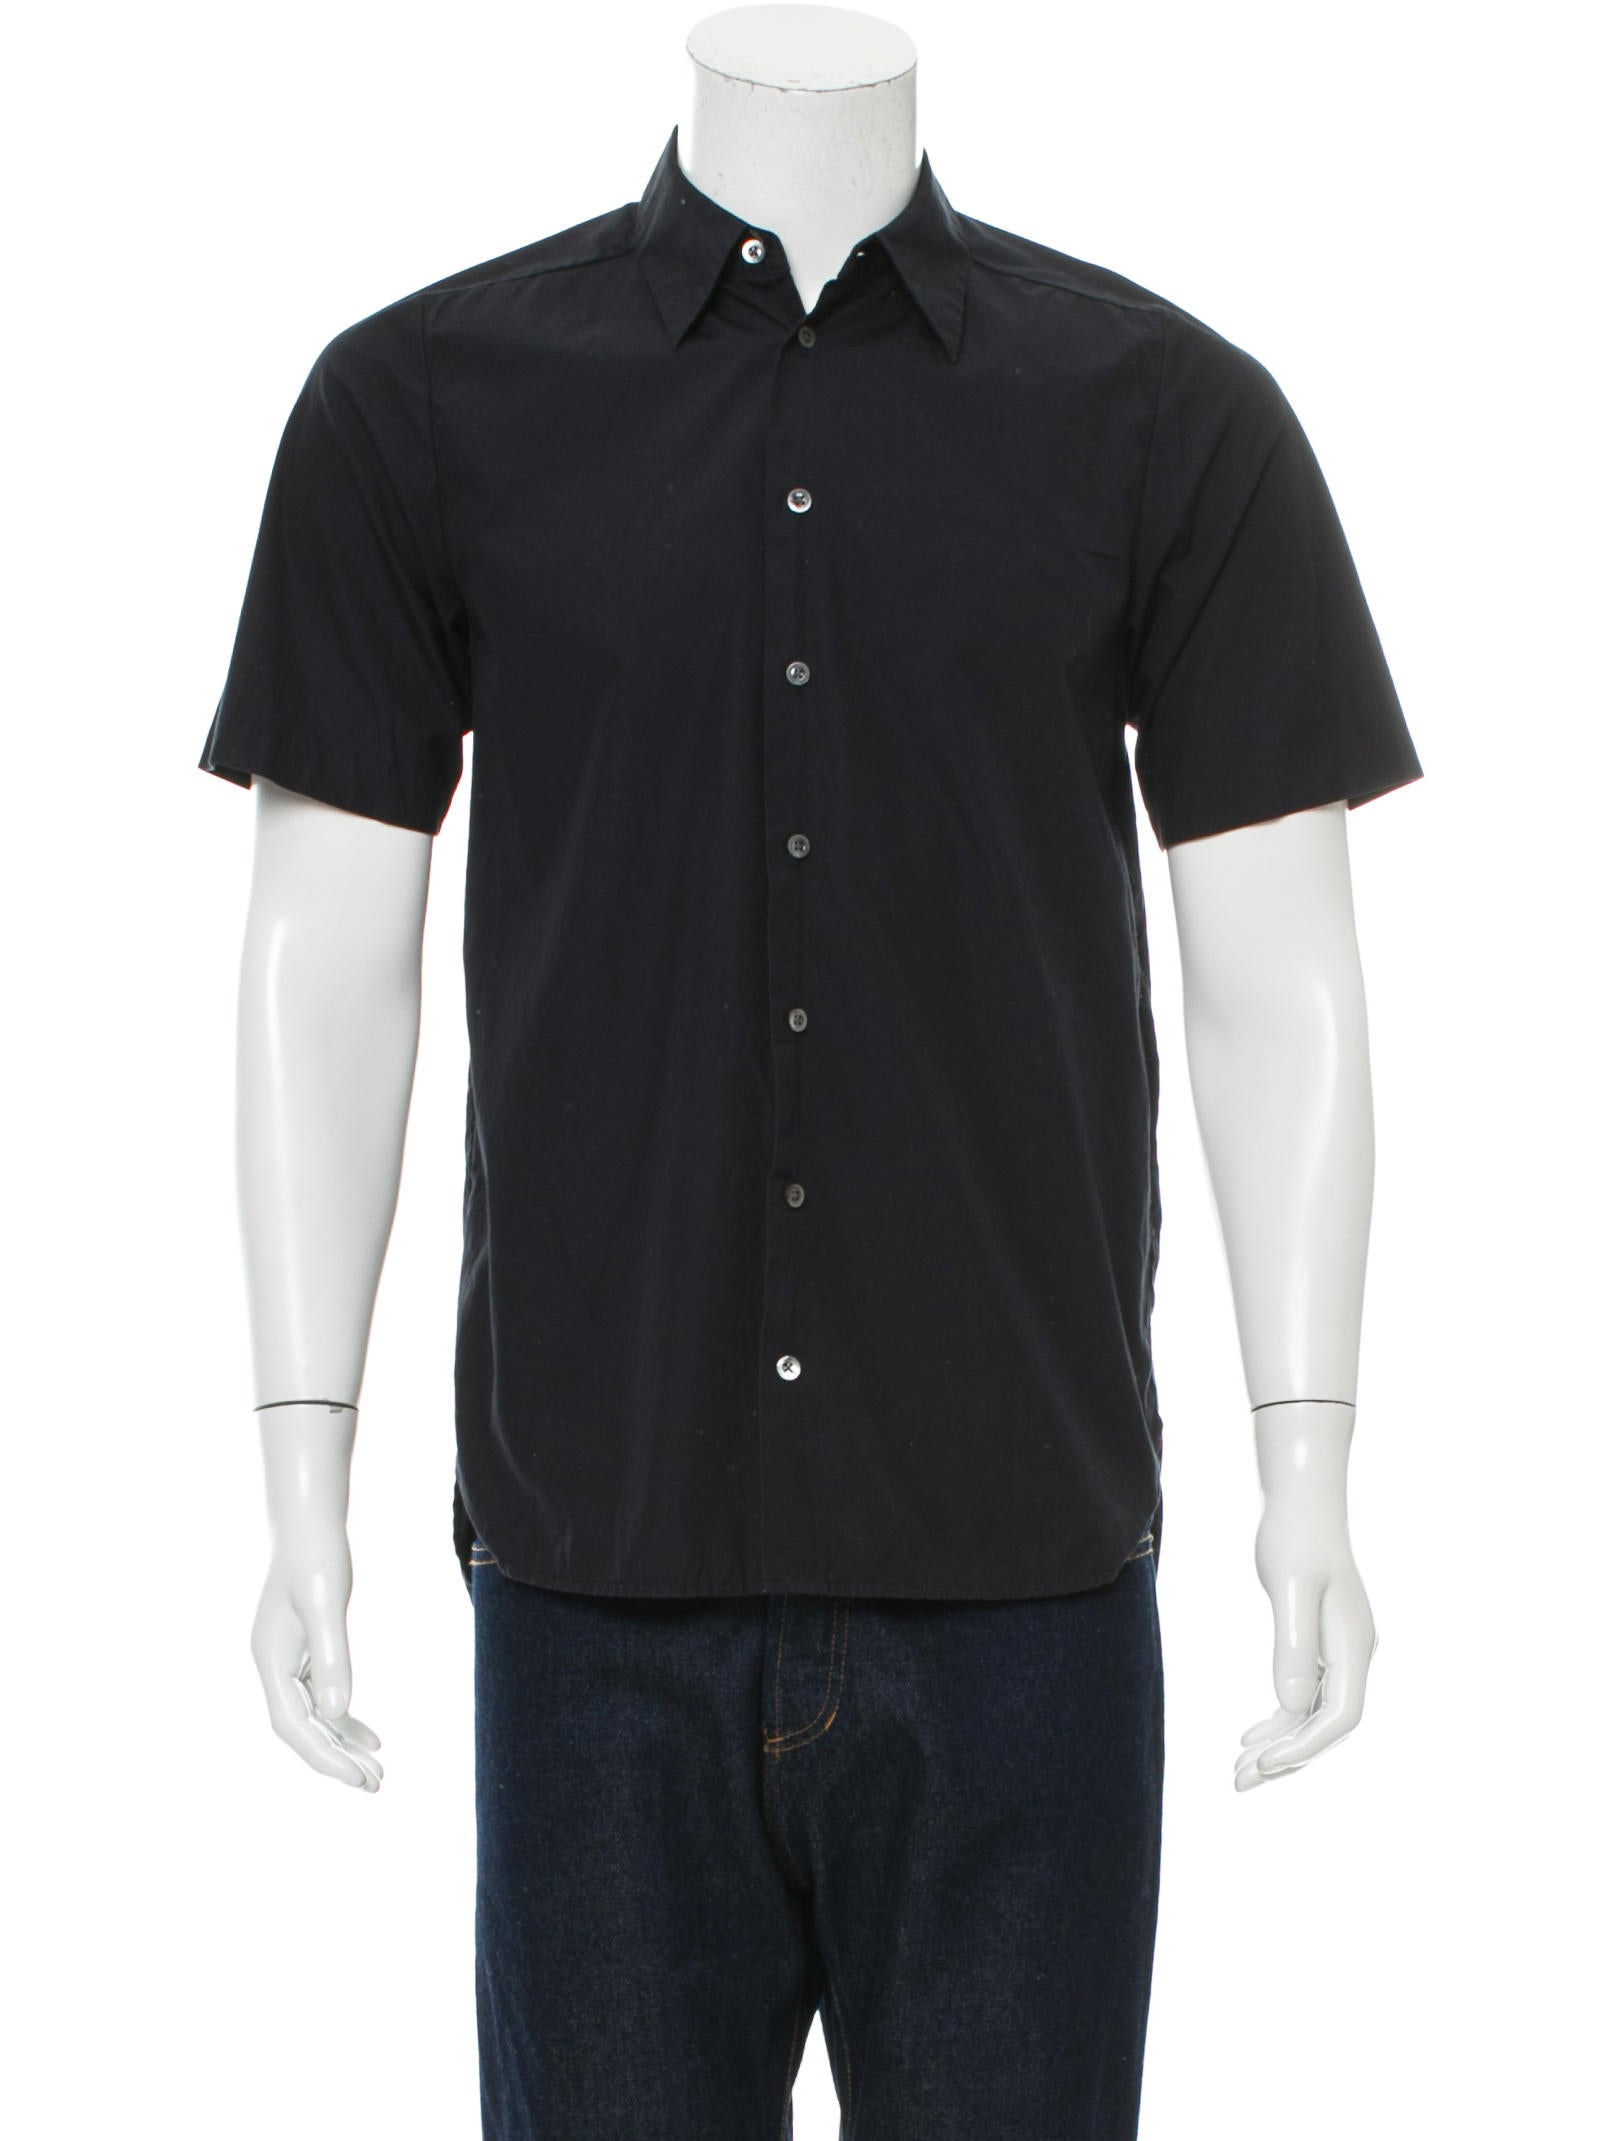 3 1 Phillip Lim Short Sleeve Button Up Shirt Clothing